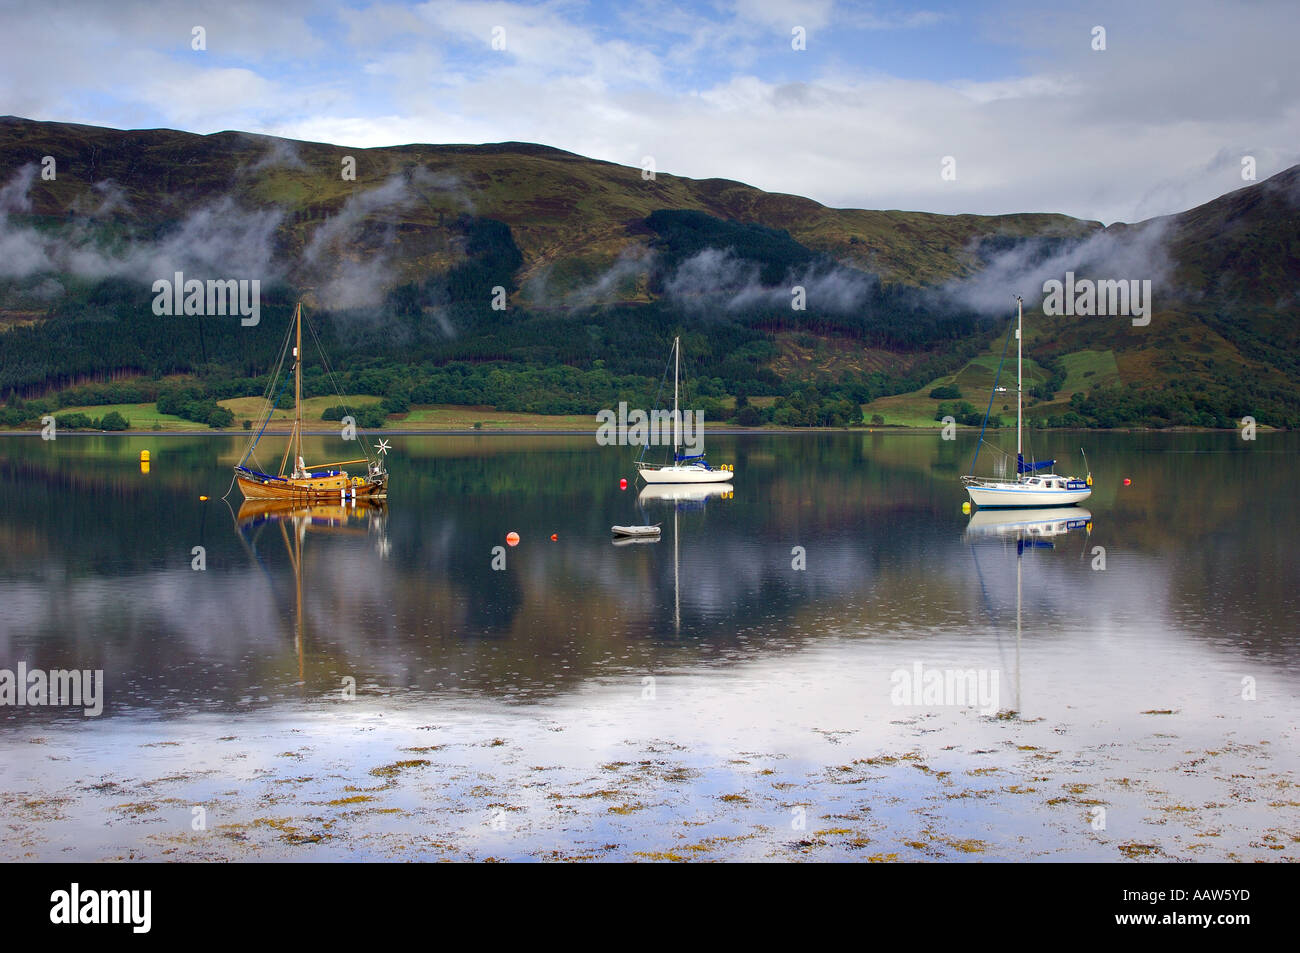 Three sailing boats on Loch Loch Leven near Ballachulish Glencoe with light clouds drifting by the mountainous backdrop Stock Photo